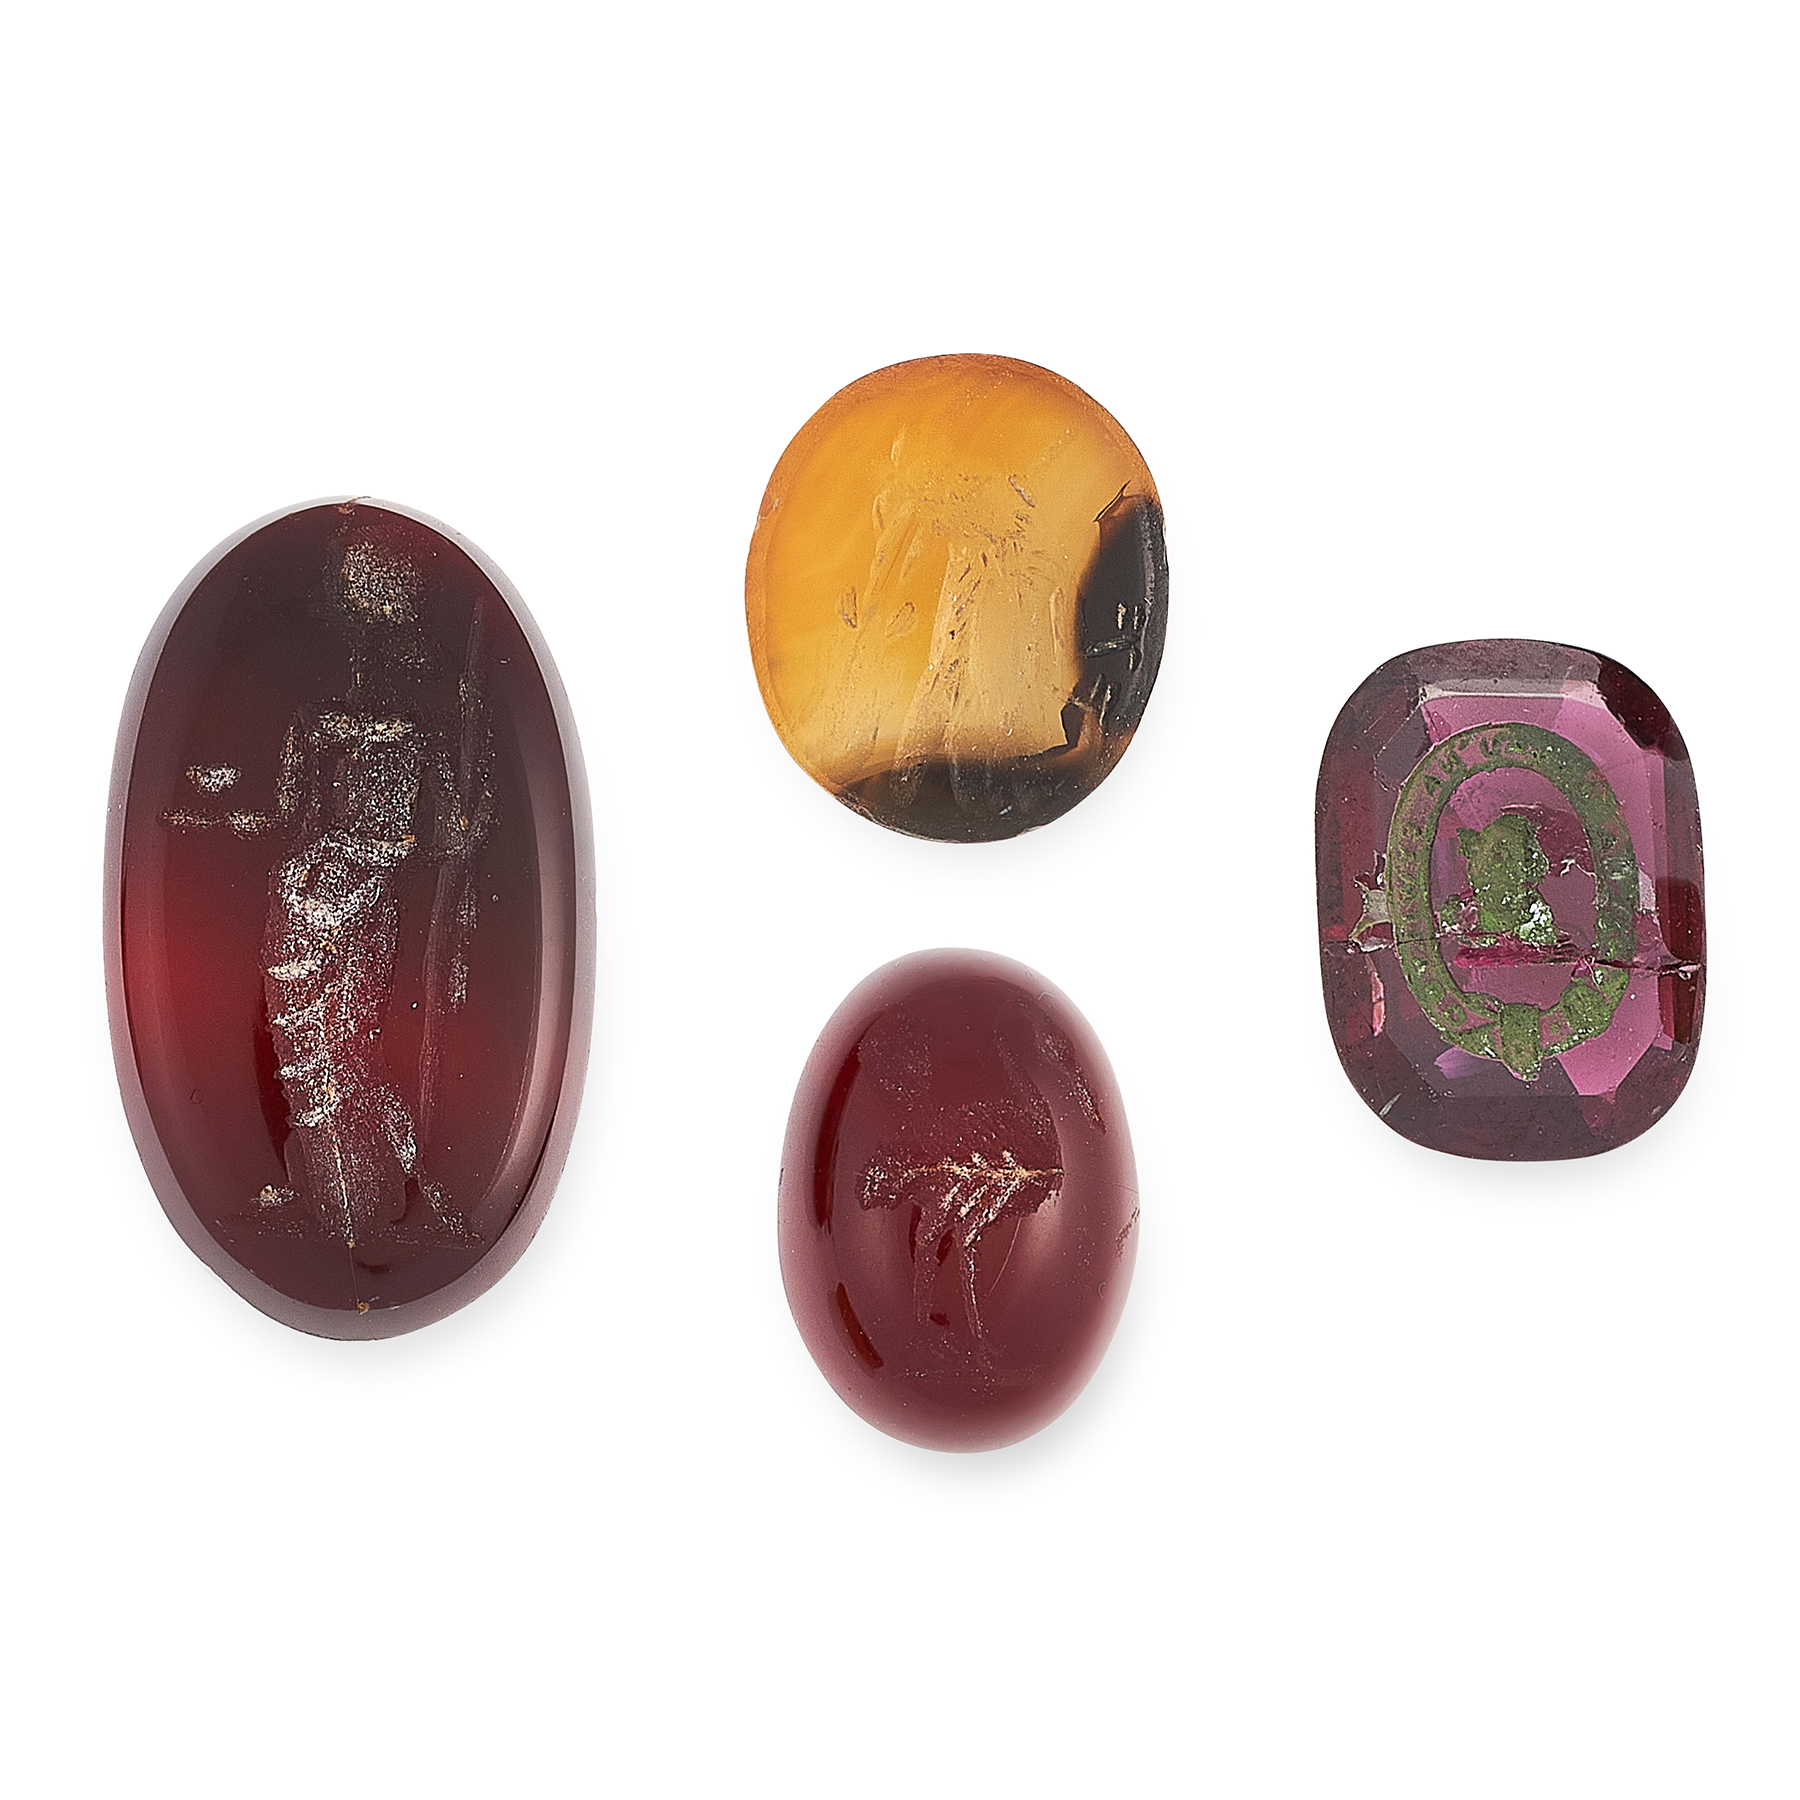 FOUR ANTIQUE HARDSTONE INTAGLIOS of oval form, each carved from hard stone to depict various